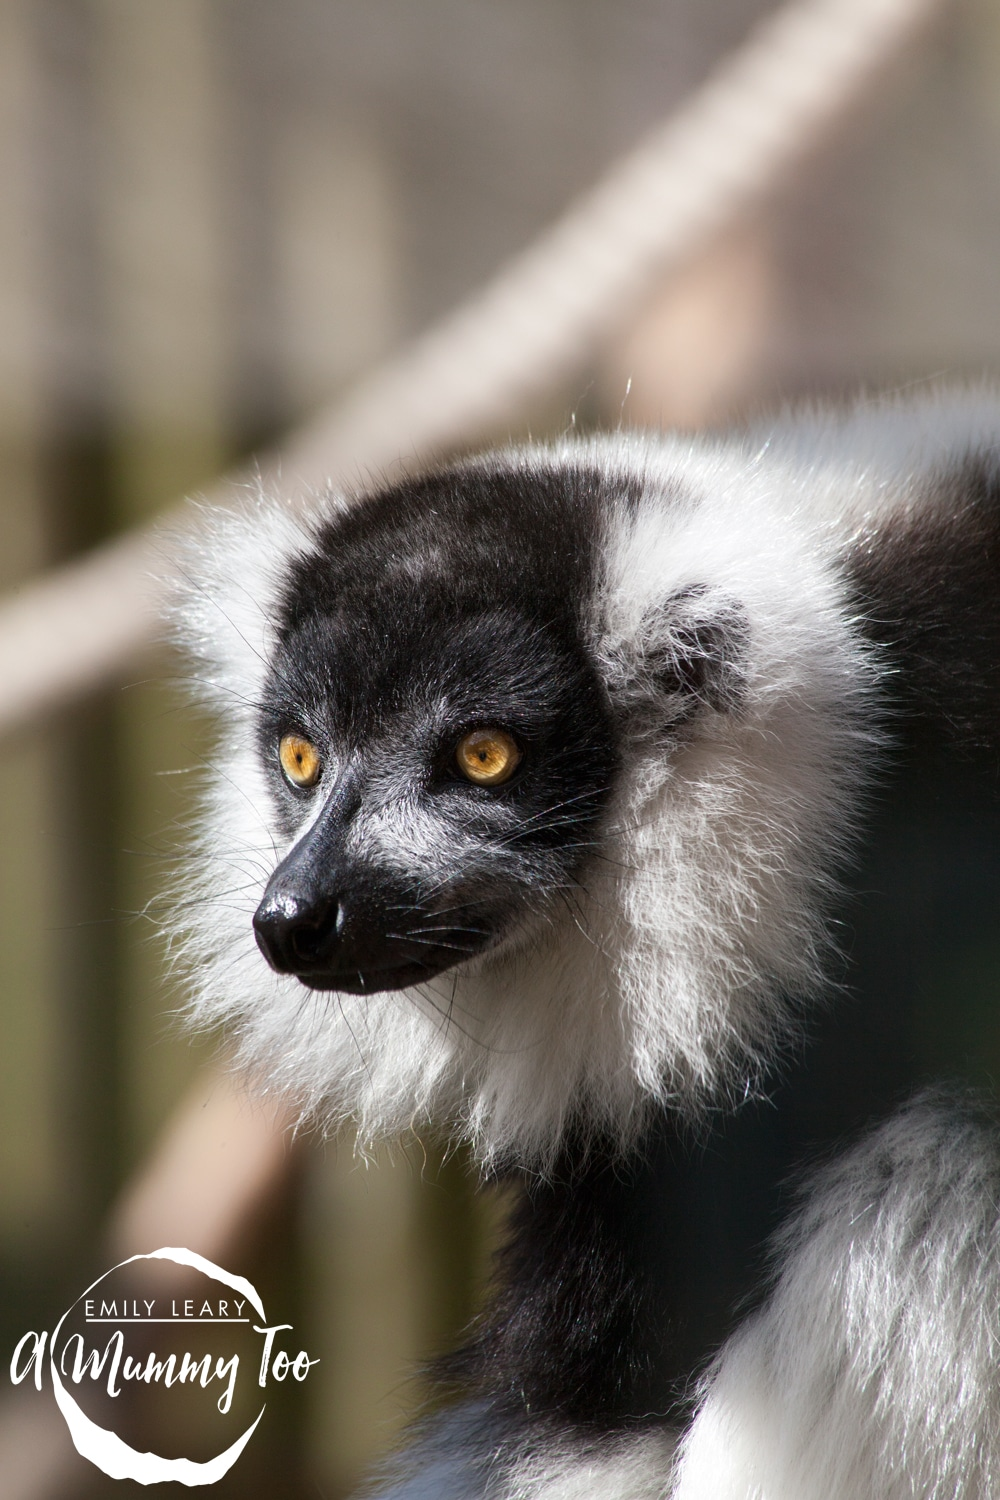 twycross-lemur-close-up